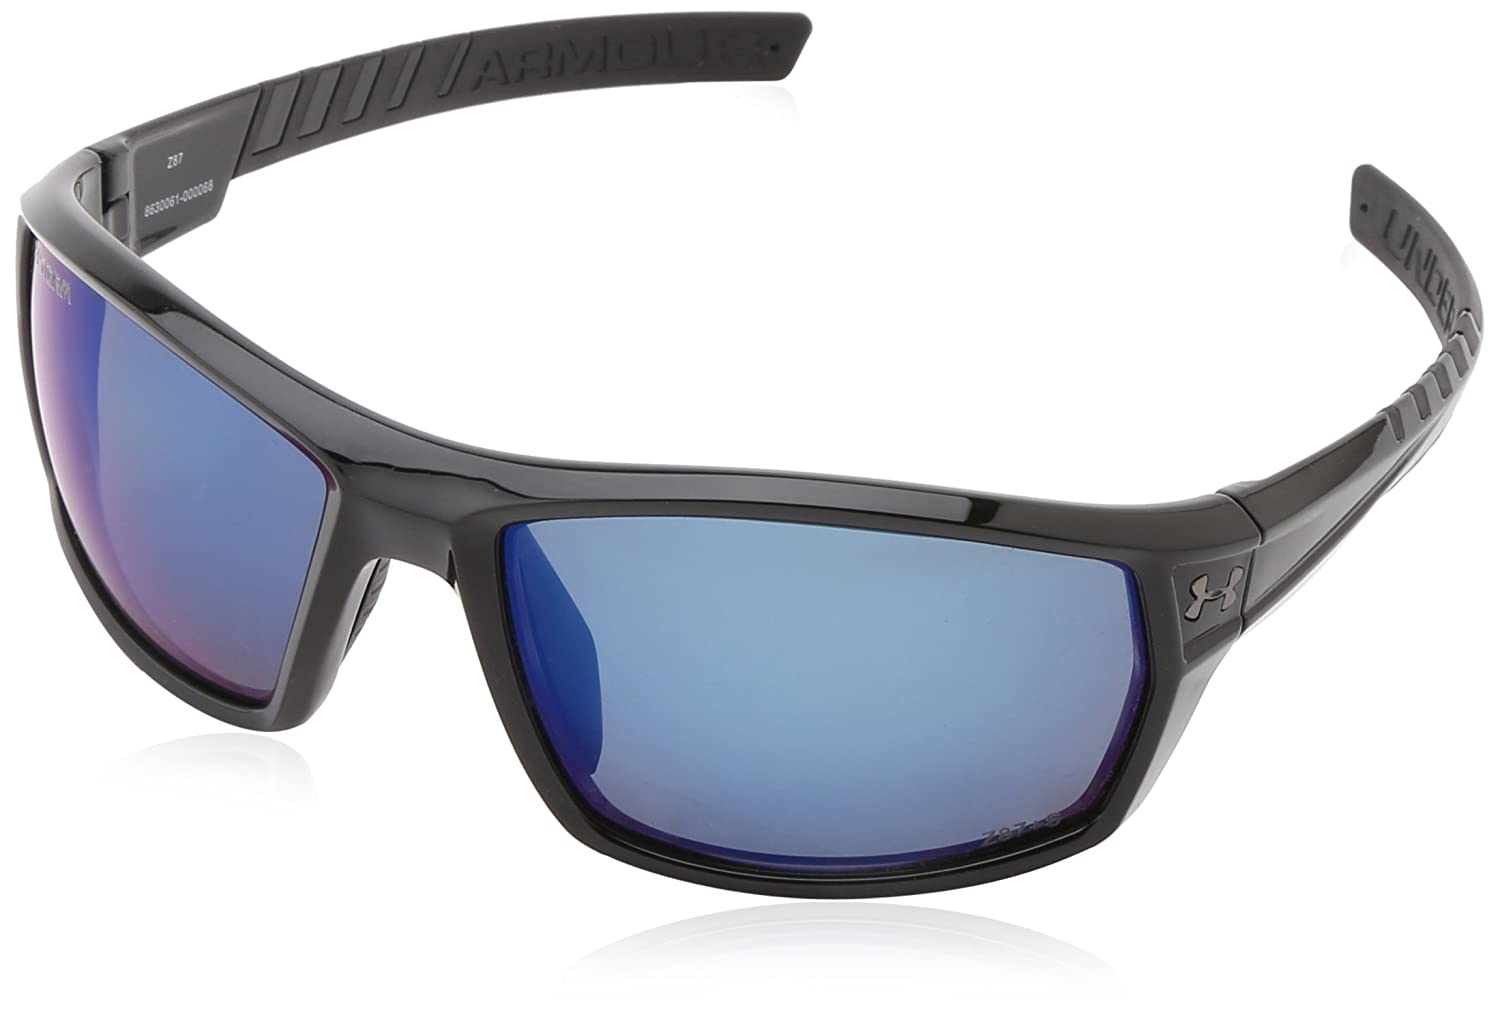 60bdfb00303d6 Under Armour Ranger Storm (ANSI) Rectangular Sunglasses Shiny Black Frame  with Black Rubber Gray Polarized and Blue Mirror Lens  Amazon.ca  Clothing    ...